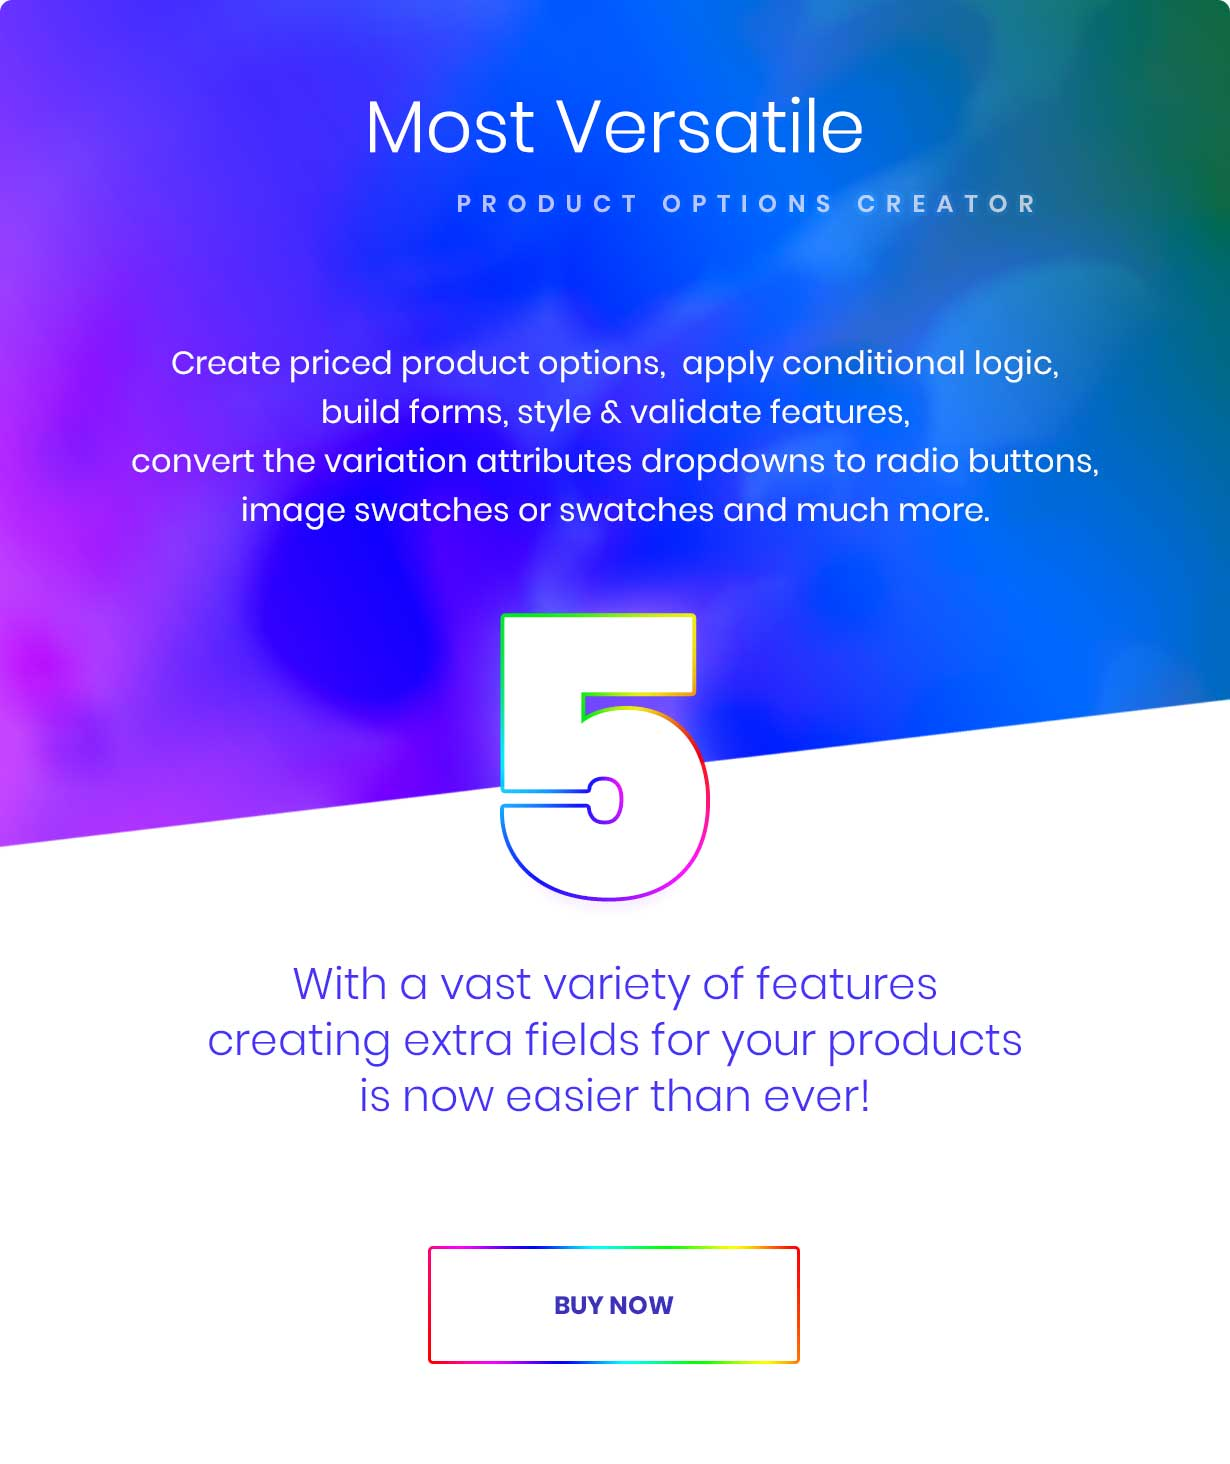 Most versatile options creator